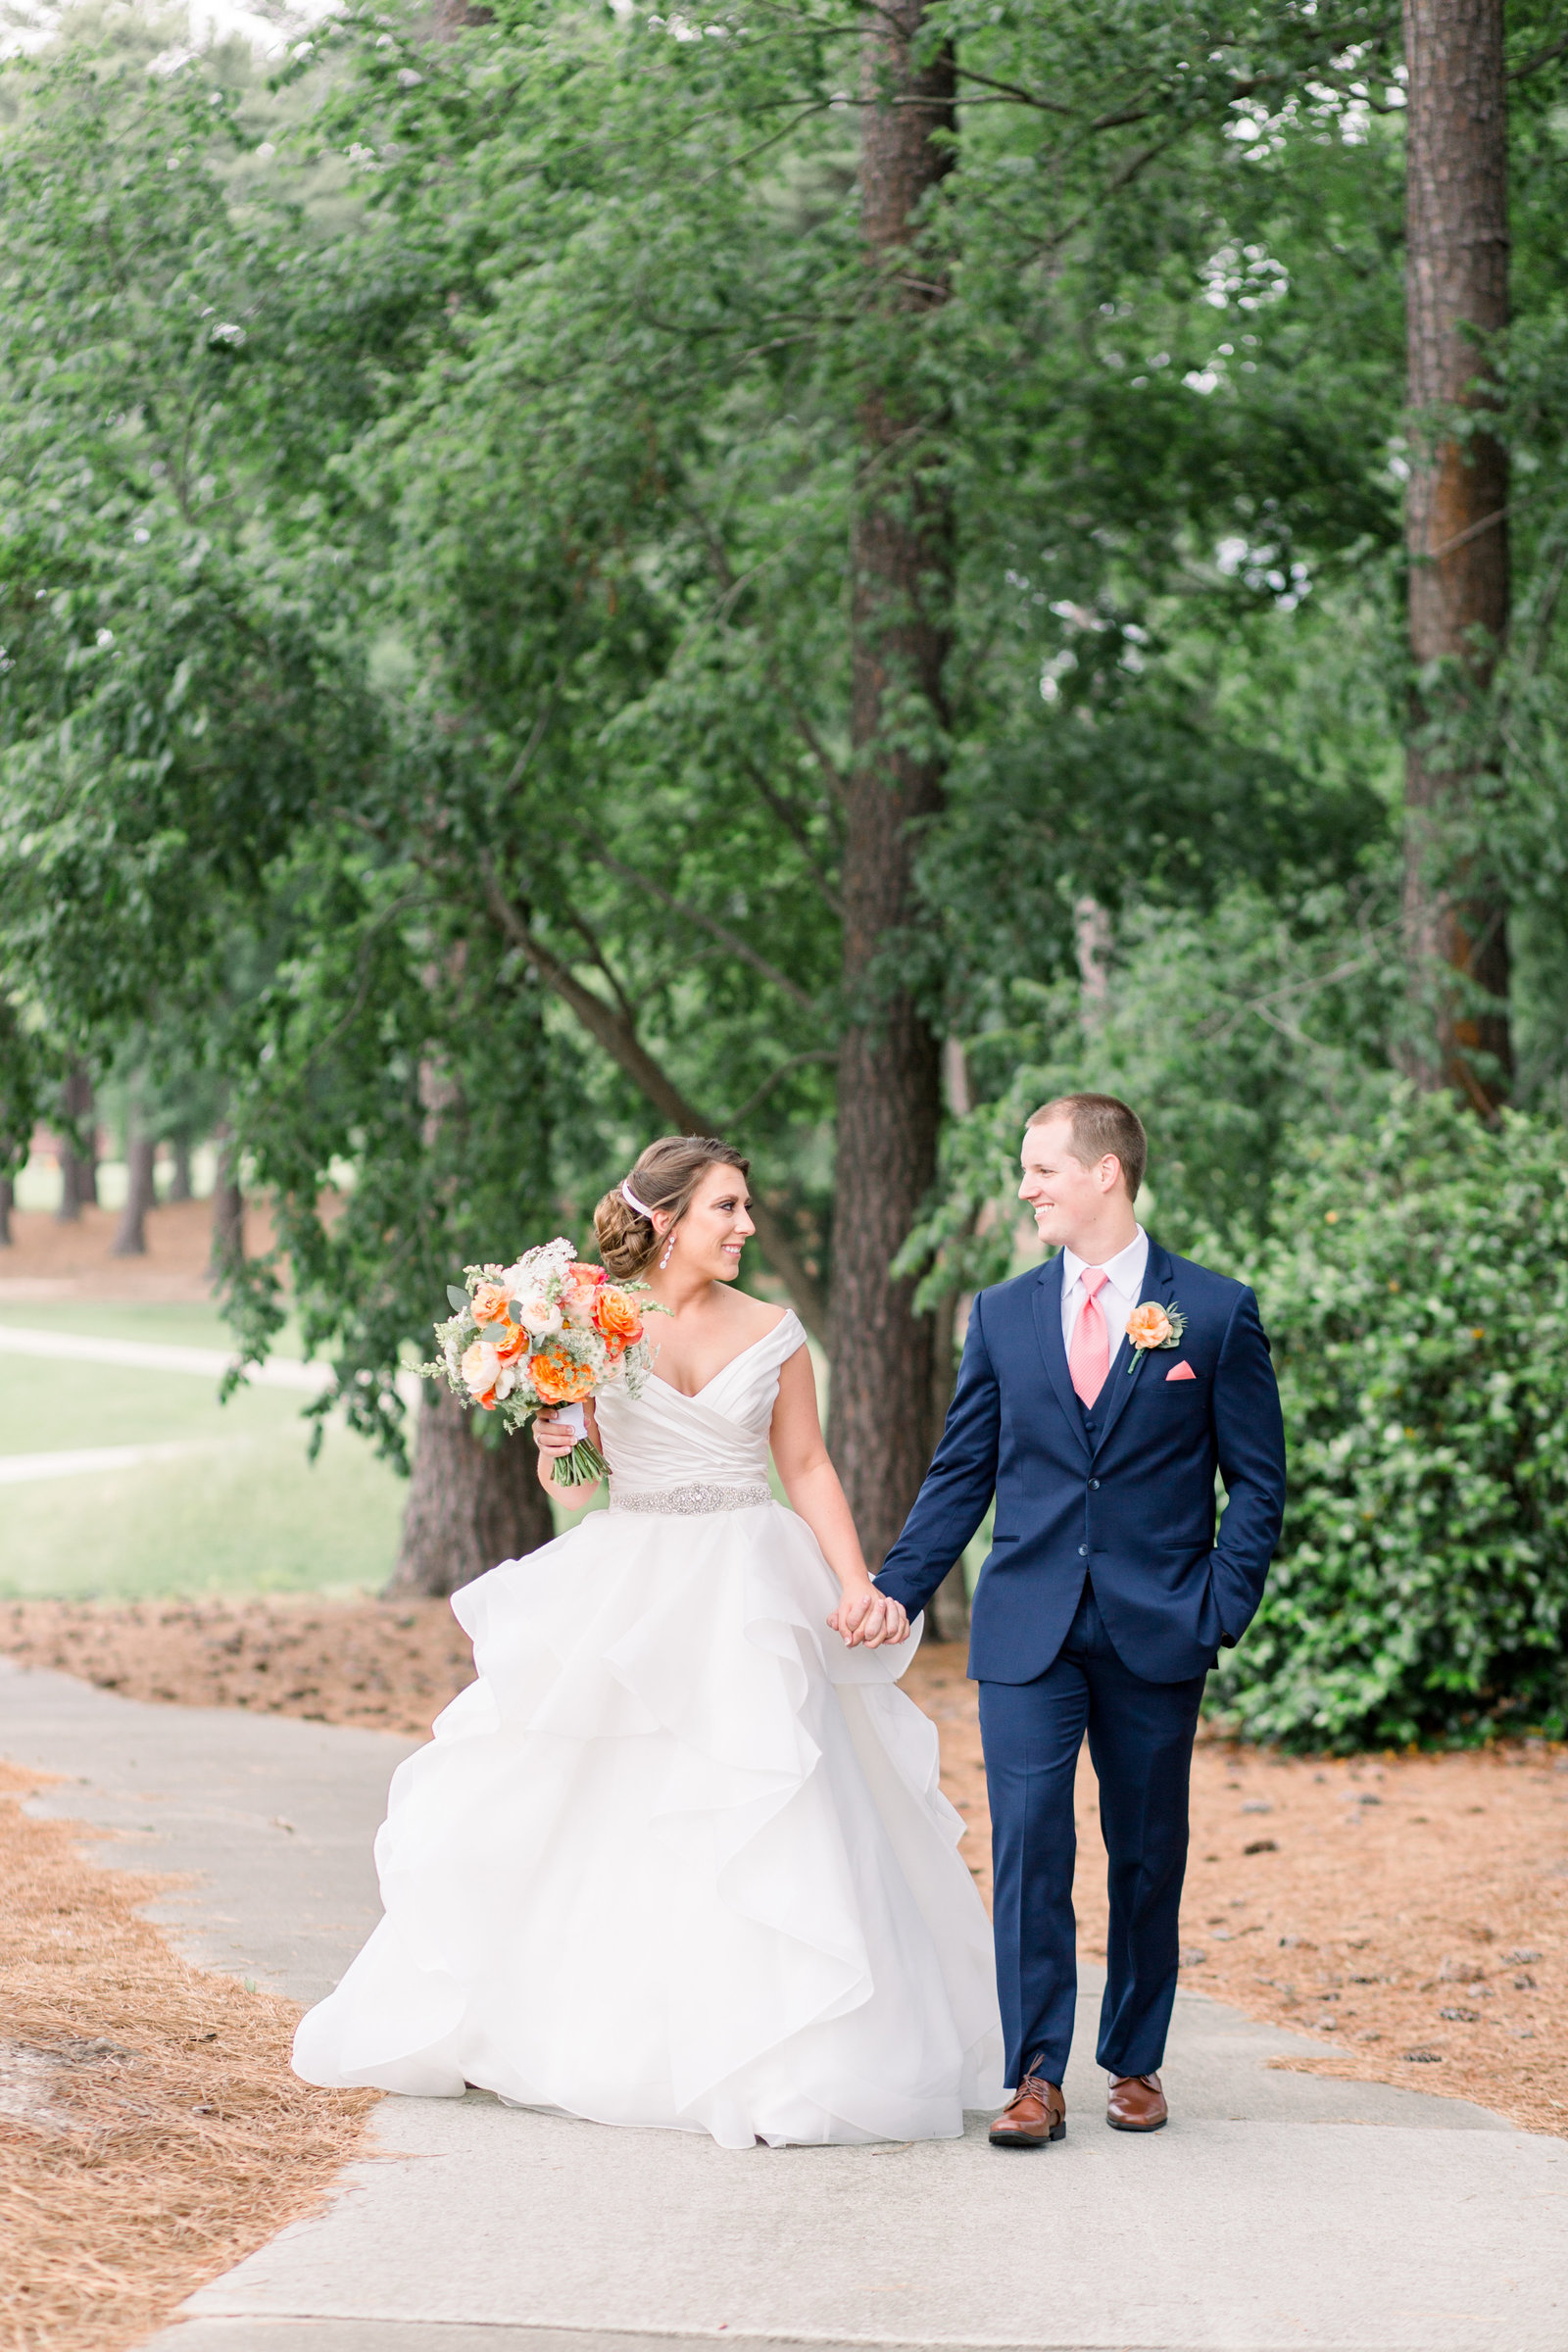 Patrick and Katie Married-Portraits-Samantha Laffoon Photography-48